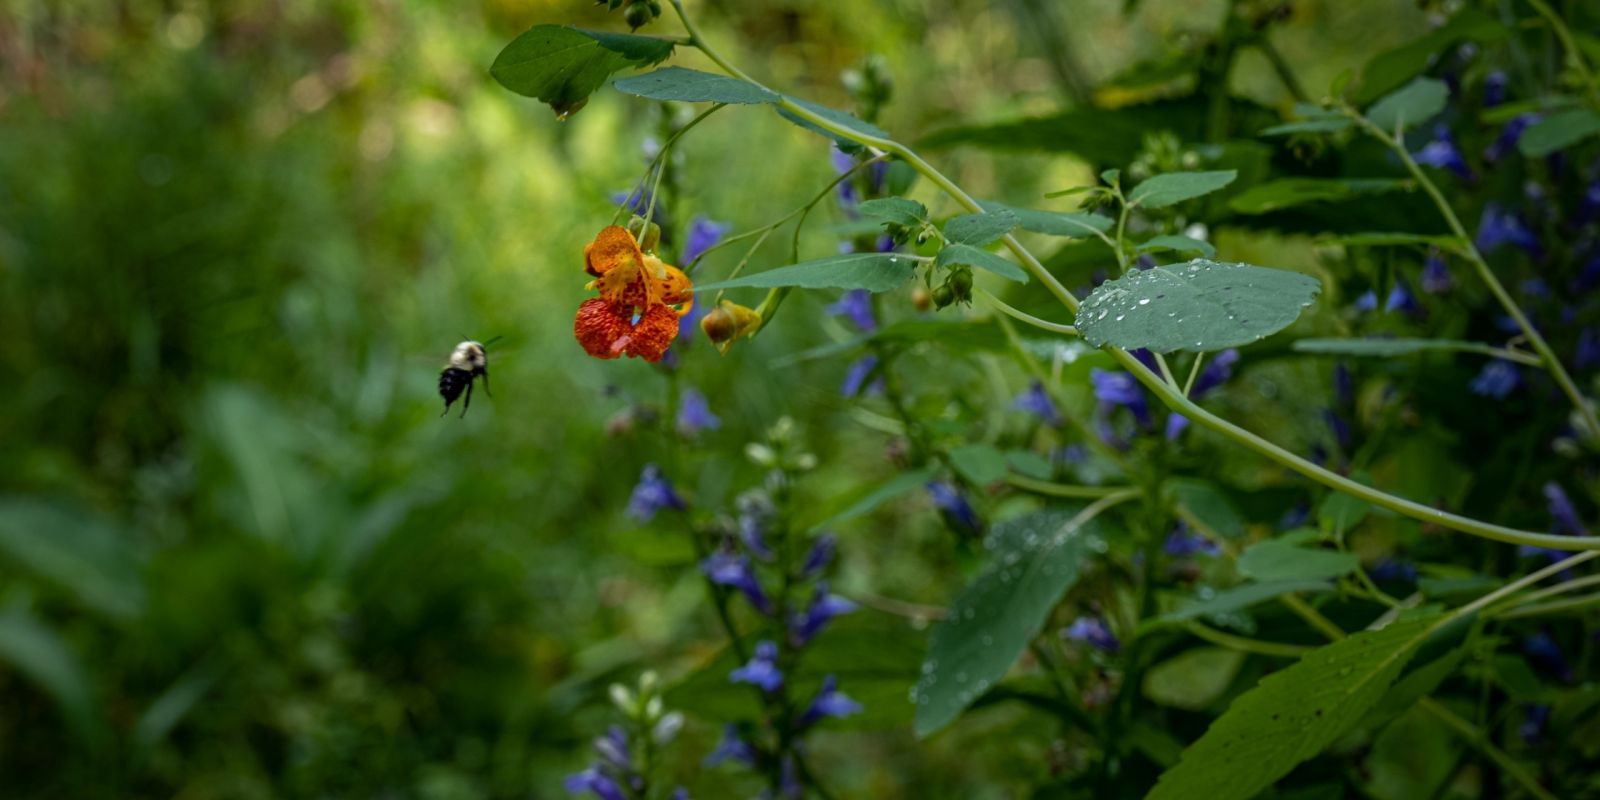 Bee hovering next to flower amoung greenery